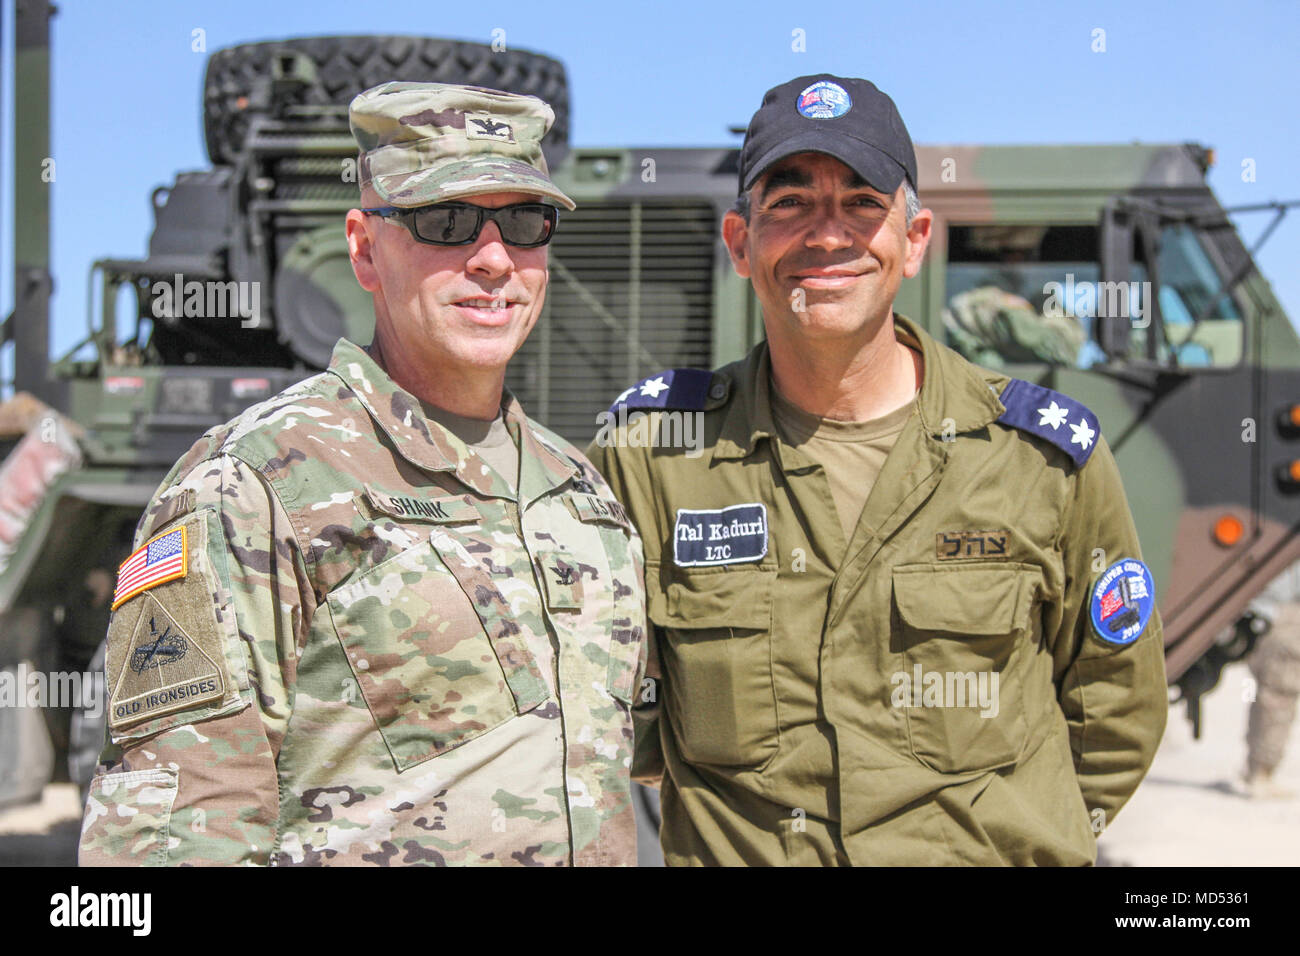 Col. David E. Shank, commander of the 10th Army Air and Missile Defense Command, takes a photo with Lt. Col. Tal Kaduri, head of cooperation for the Israel Air Defense Force, while visiting the 5th Battalion, 7th Air Defense Artillery area of operation during Juniper Cobra 18, here Mar. 14, 2018. Juniper Cobra 18 is designed to improve the shared defensive capabilities between the U.S. and Israel against any missile threats. - Stock Image